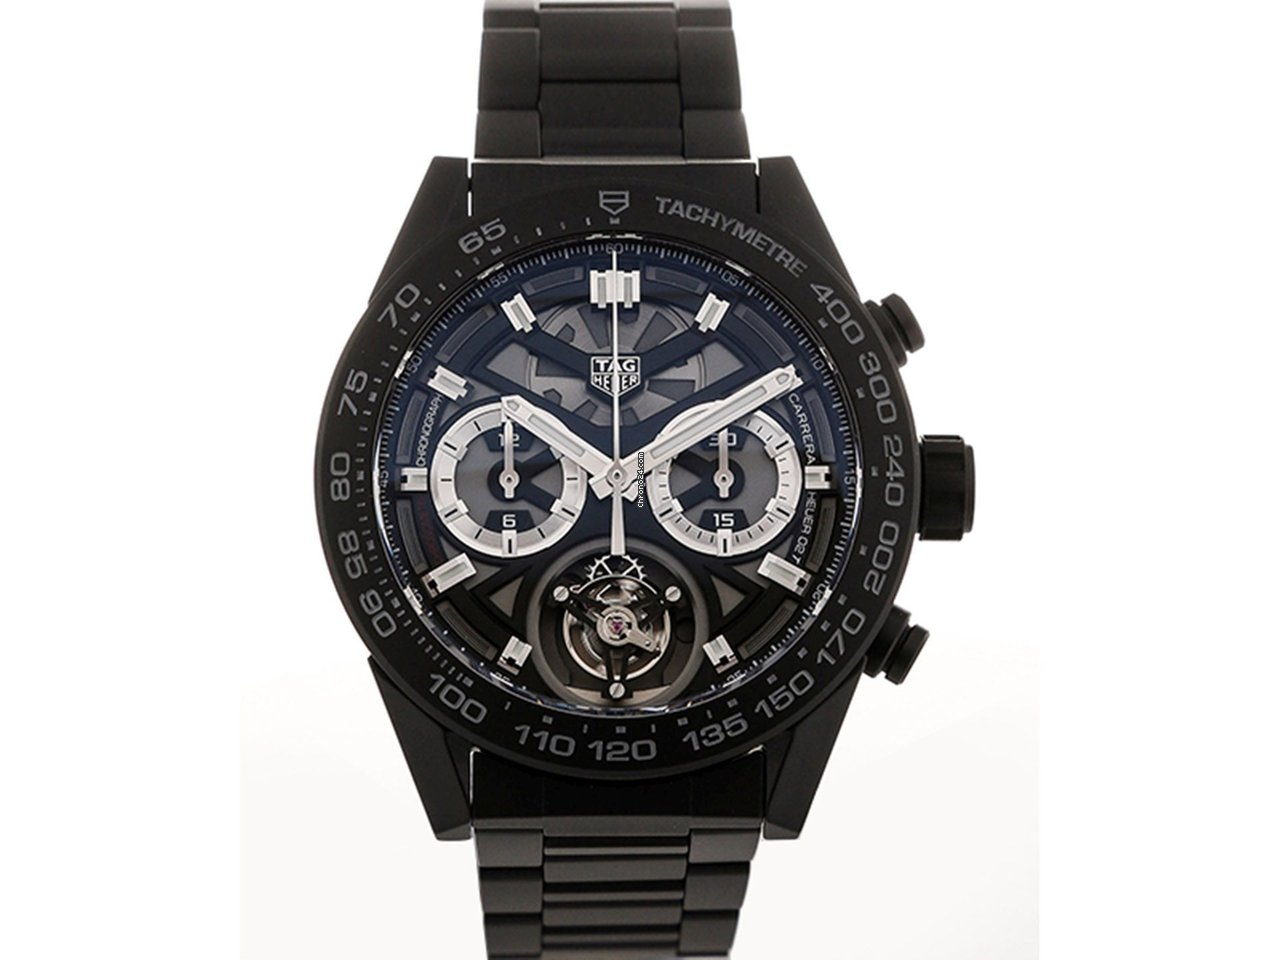 84a2070fd84 Tag heuer carrera heuer all prices for tag heuer carrera heuer watches on  chrono jpg 1280x960